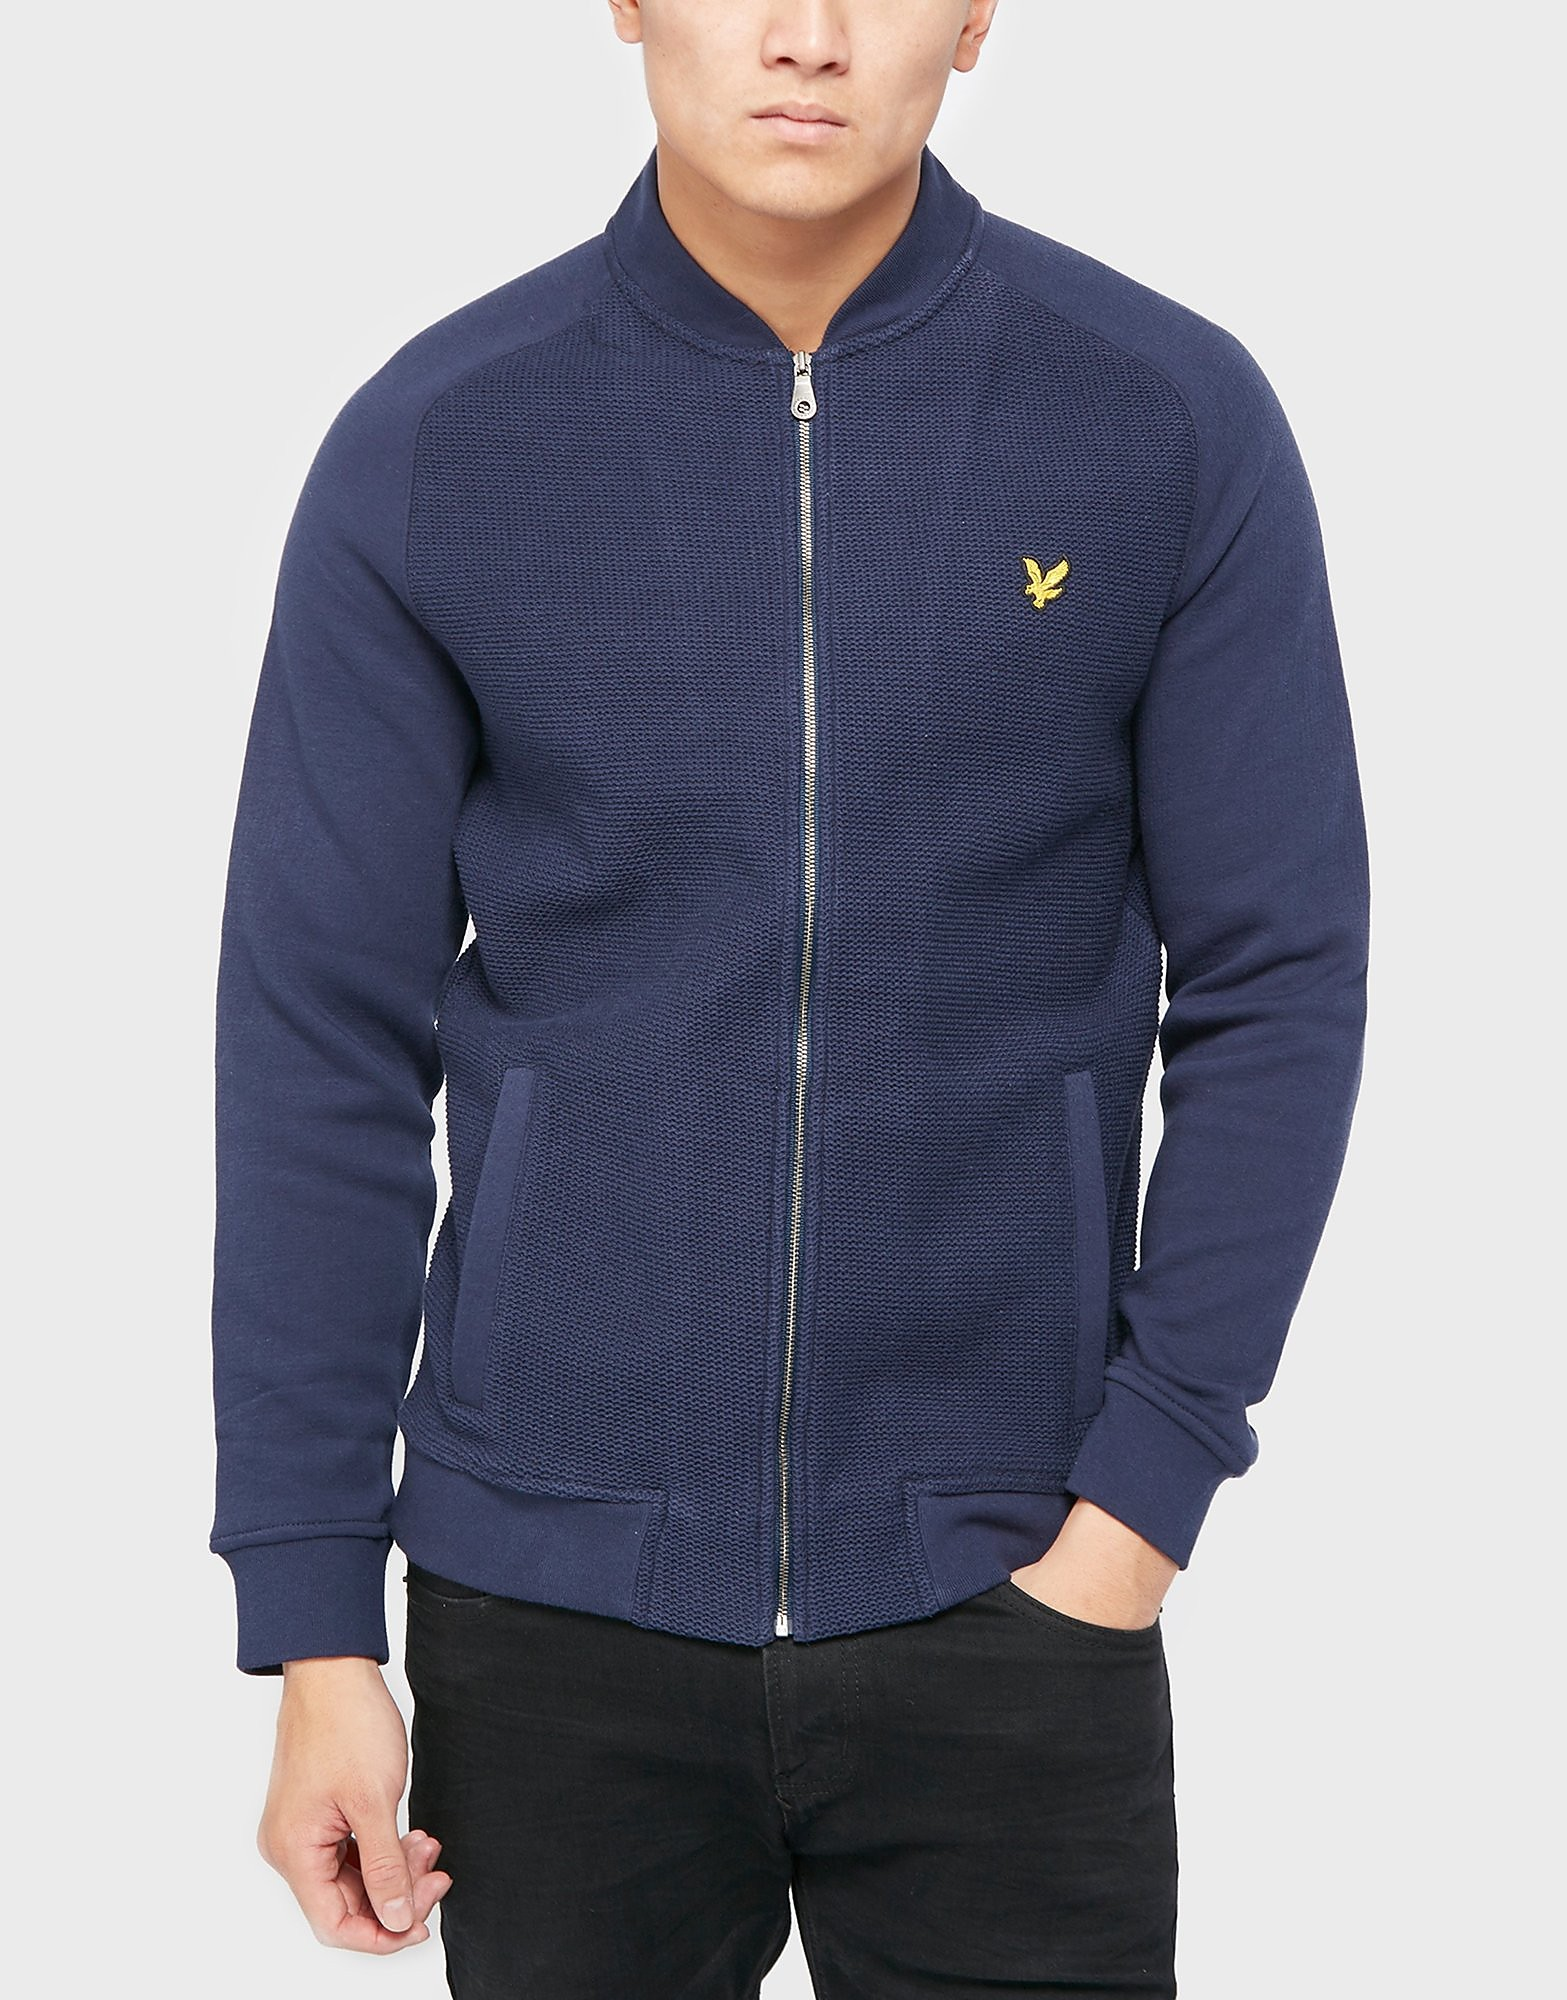 Lyle & Scott Full-Zip Bomber Jacket